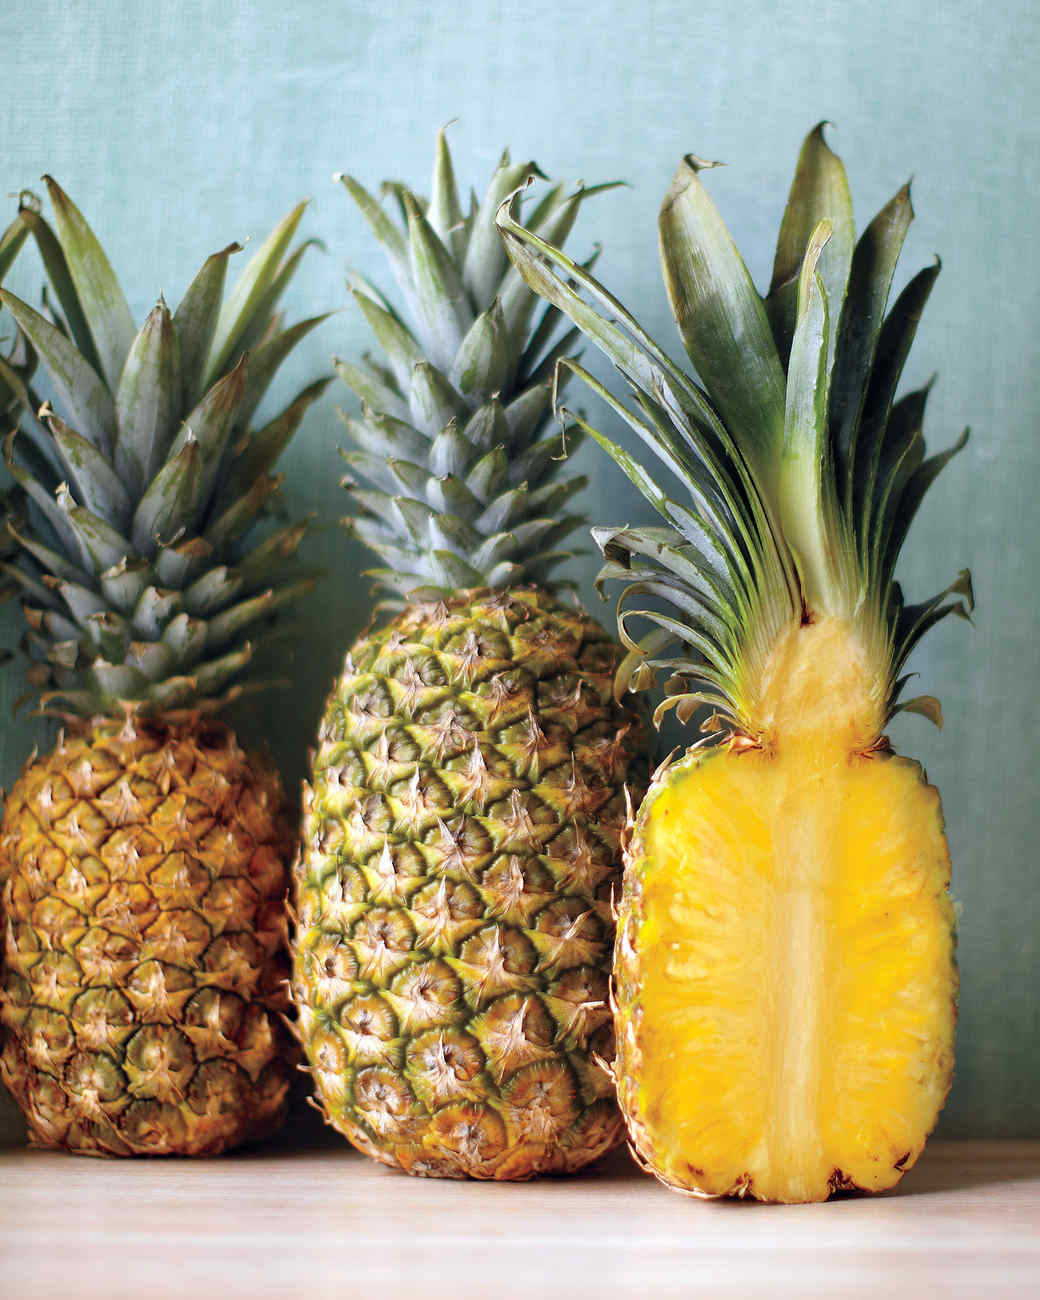 27 Pineapple Recipes That Will Make You Fall For The Sweet Juicy